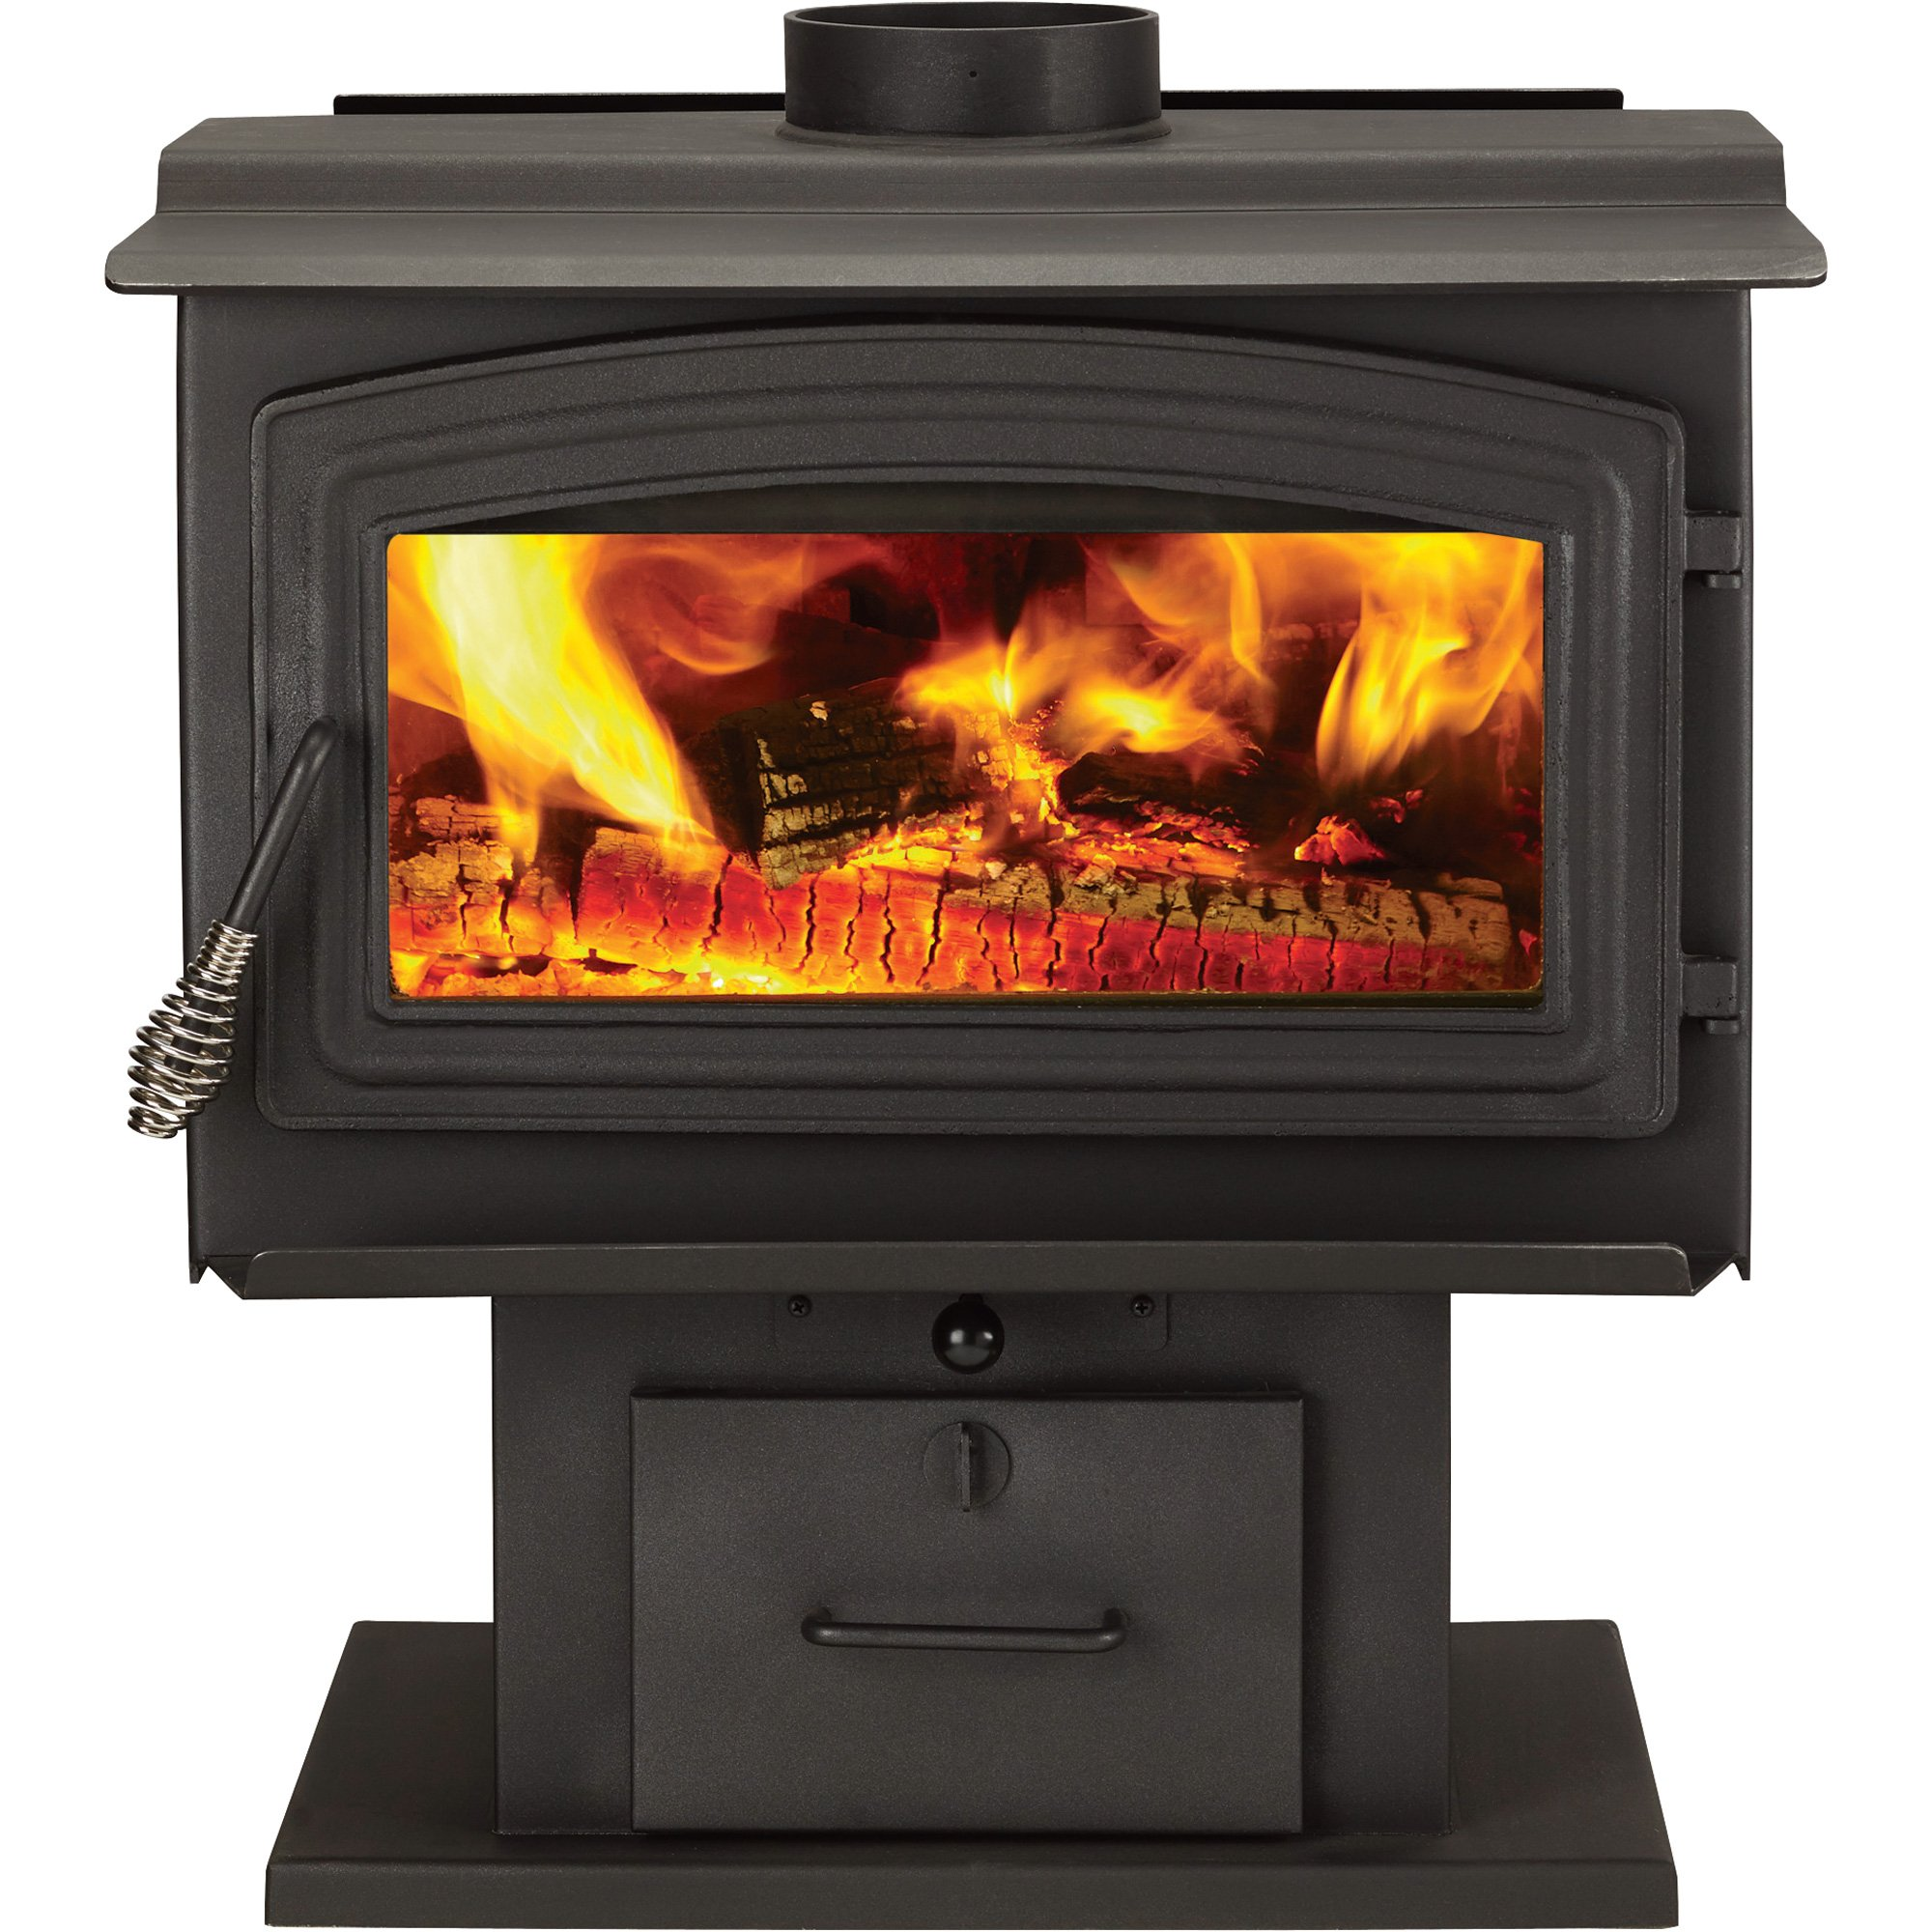 WoodPro Wood Stove - 90,000 BTU, EPA-Certified, Model# WS-TS-2000 by Woodpro